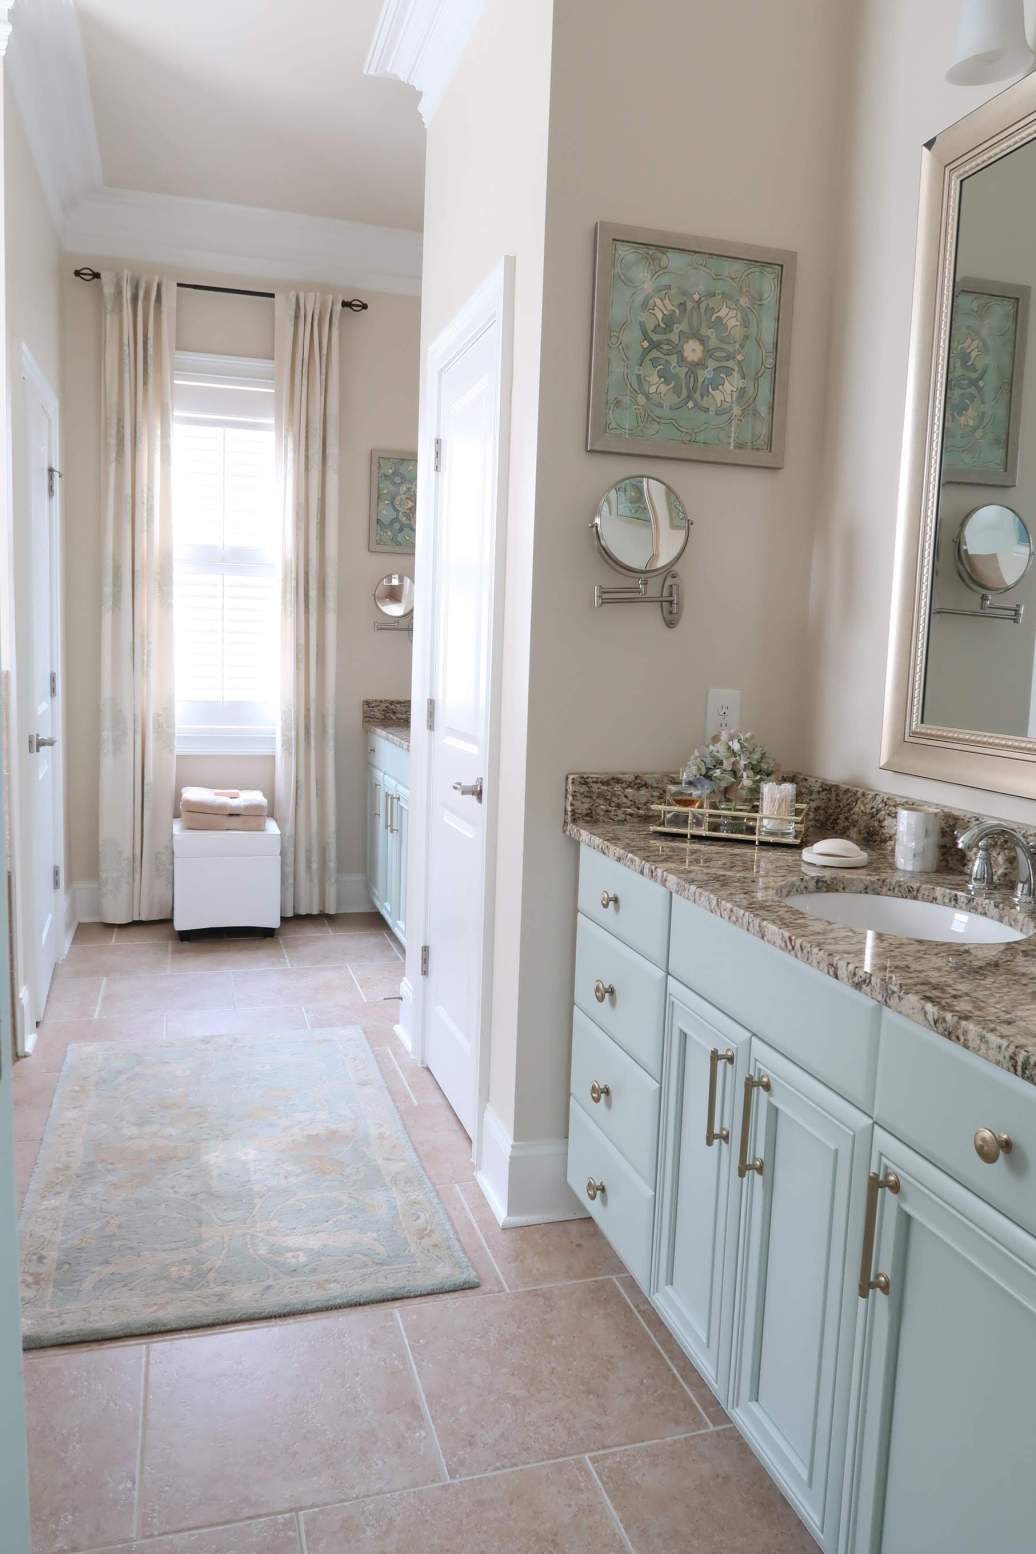 Don t paint your cabinets white porch daydreamer a - Type of paint for bathroom cabinets ...